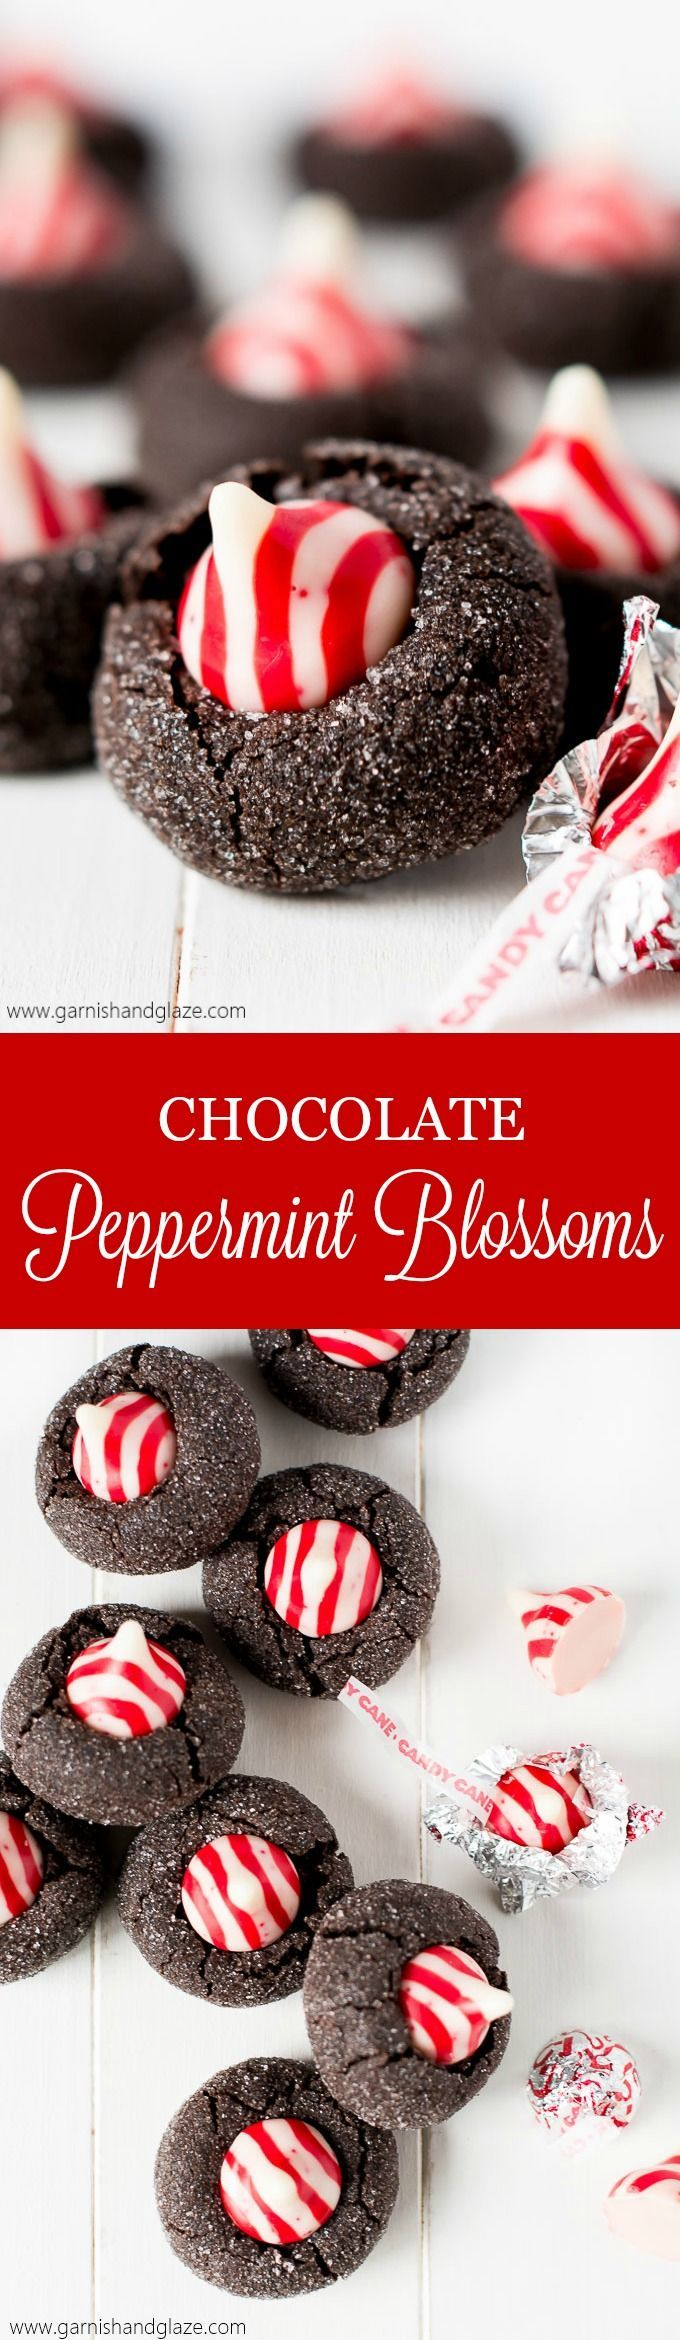 With a soft dark chocolate cookie base and peppermint kiss, these Chocolate Peppermint Blossoms will be the most beautiful cookie on your Christmas plate! Plus, enter the GIVEAWAY to win one of TWO $100 Amazon Gift Cards!